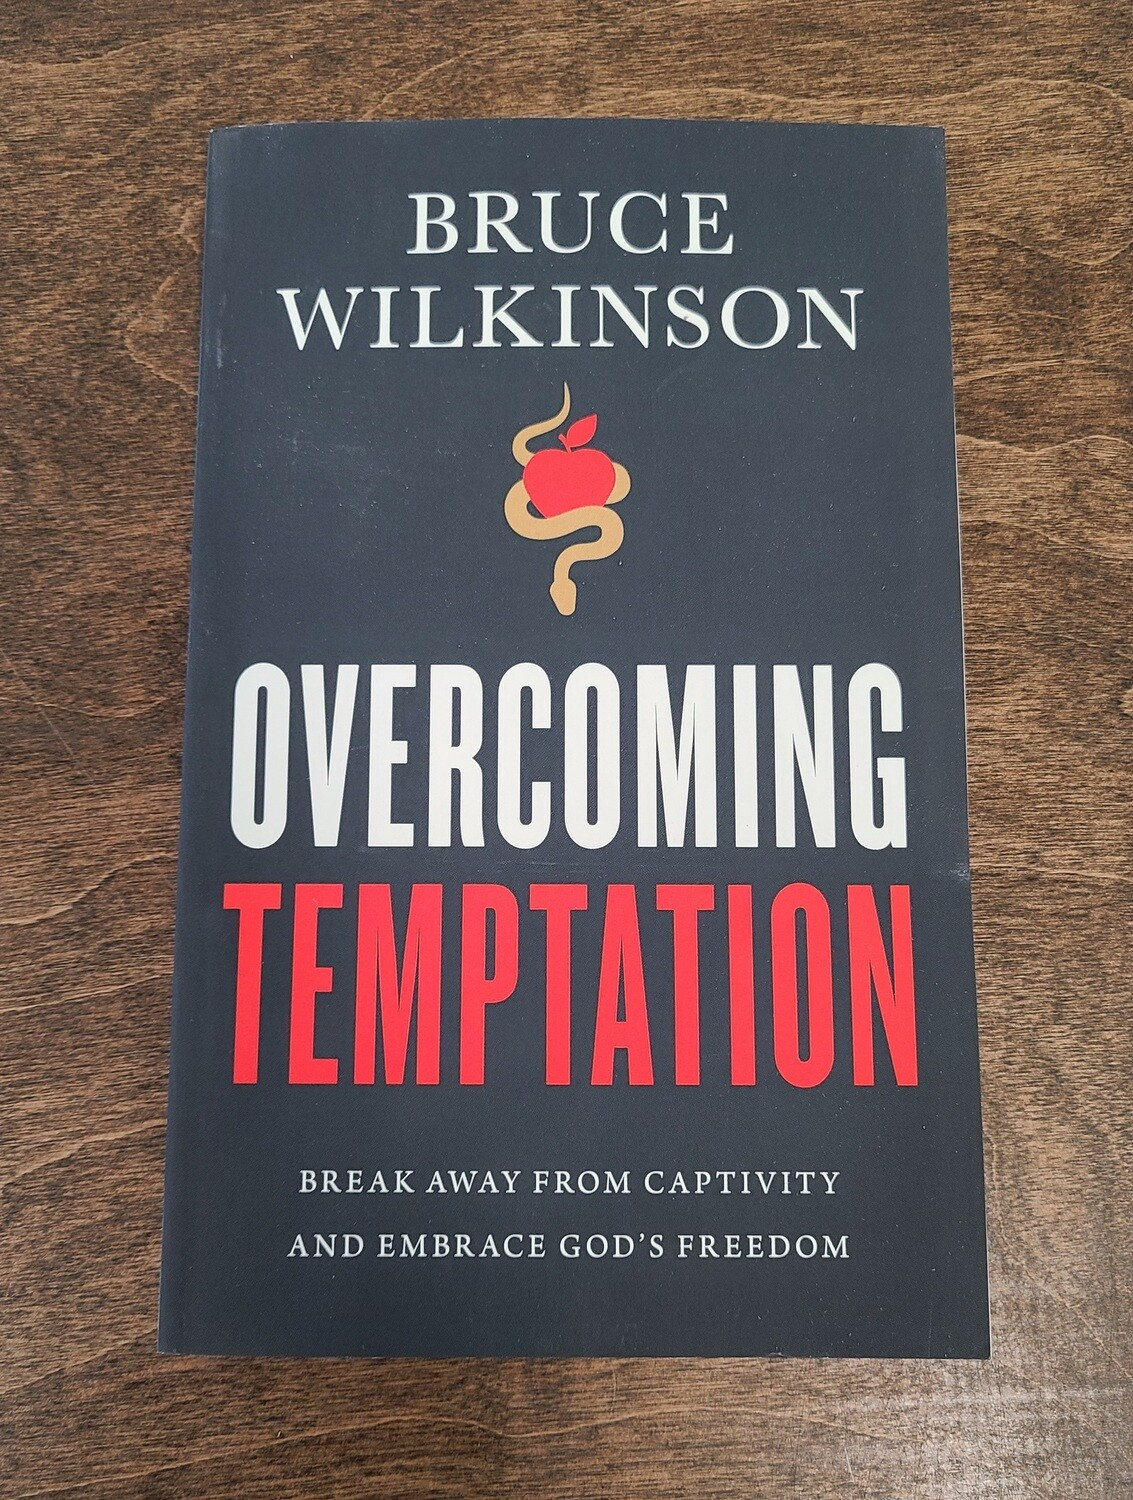 Overcoming Temptation: Break Away from Captivity and Embrace God's Freedom by Bruce Wilkinson